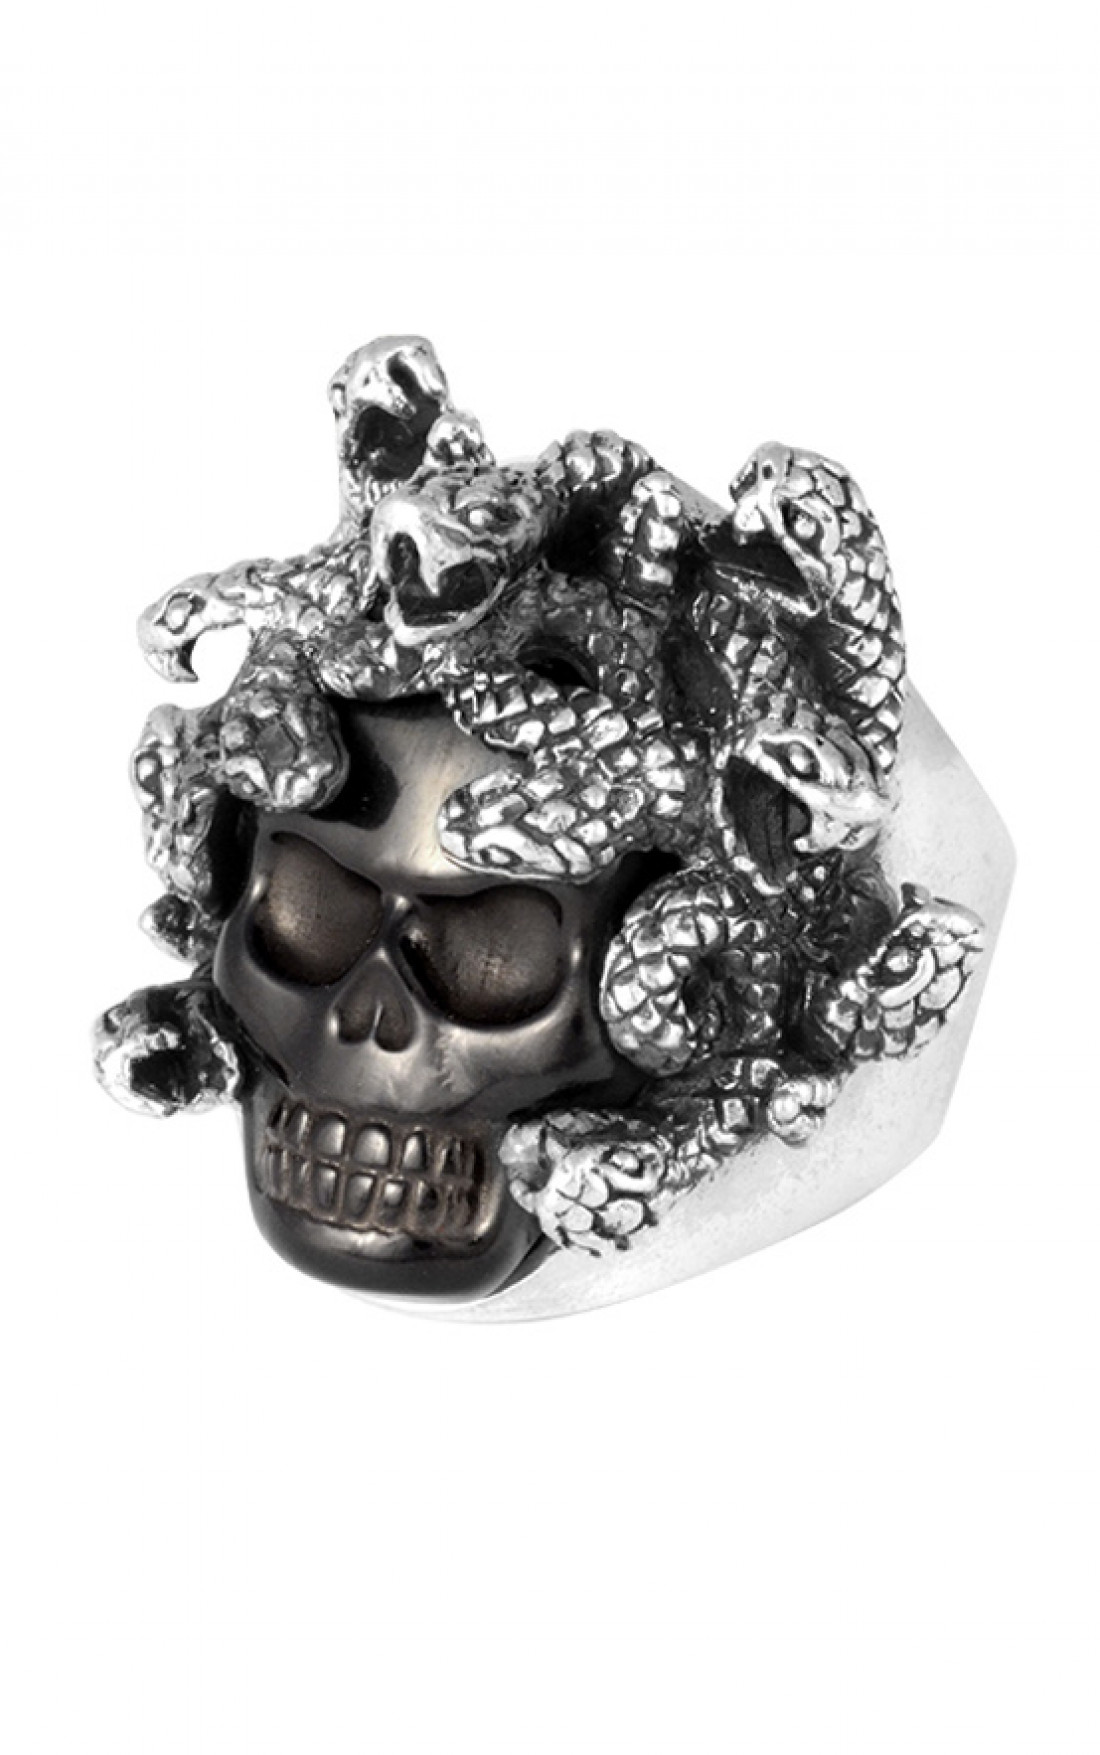 King Baby - Medusa Skull Ring with Carved Jet (K20-5700-JET)